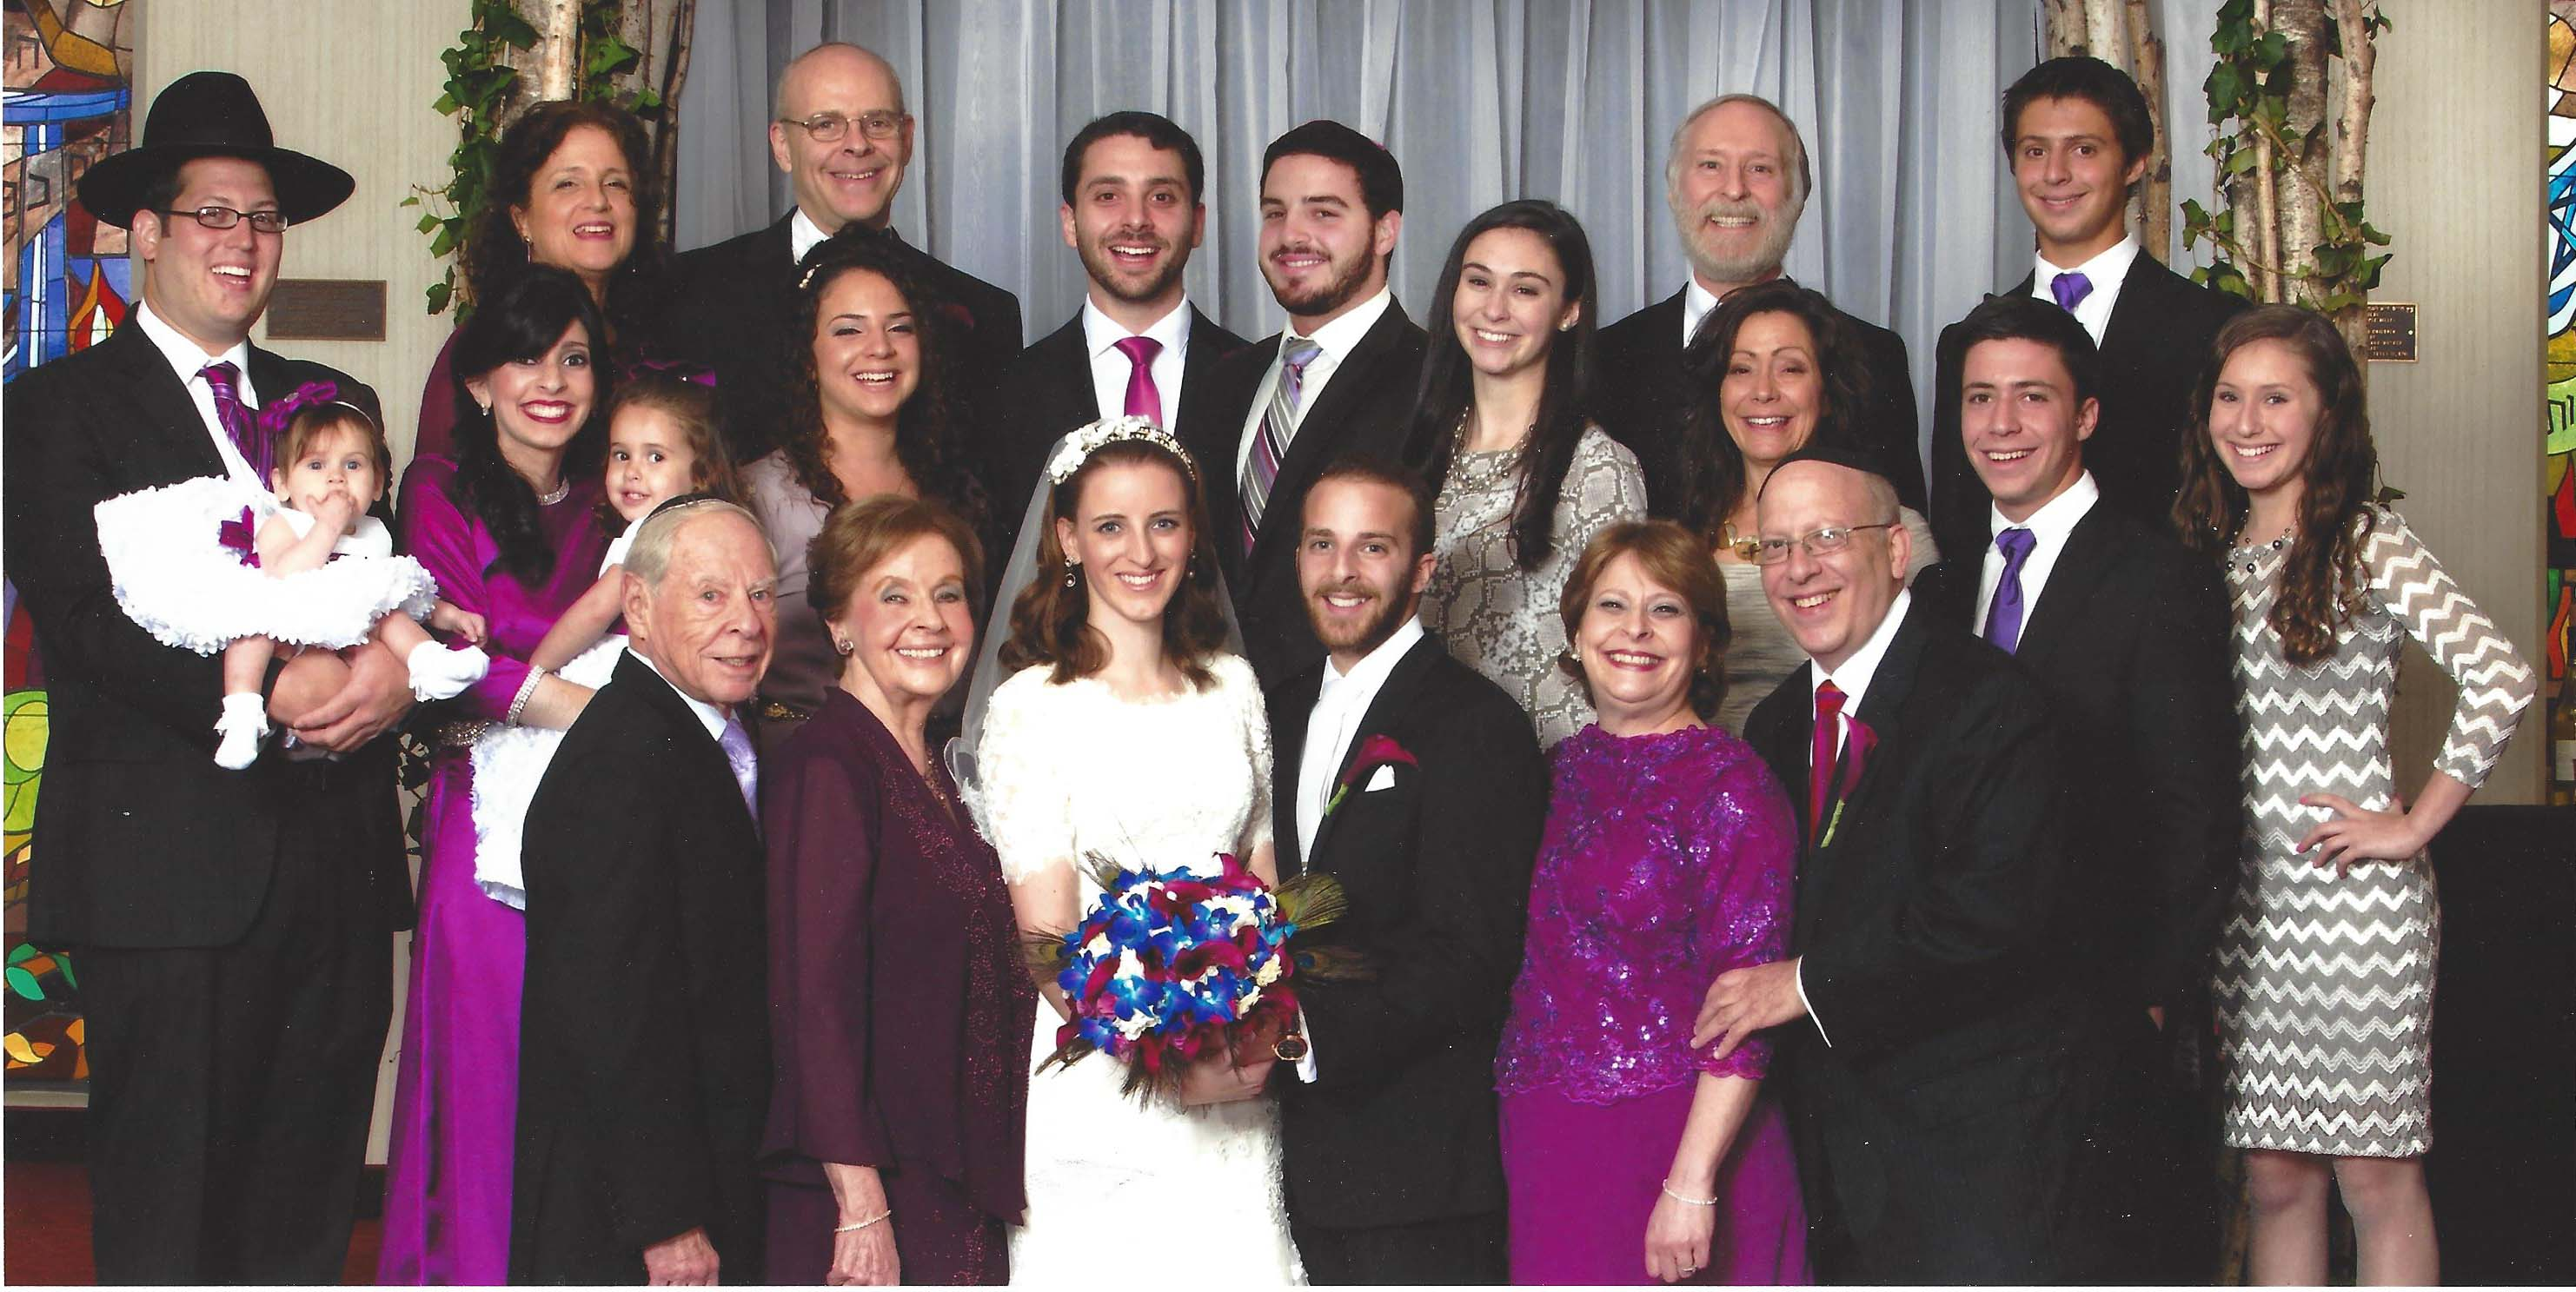 Marion and Nathaniel & Family, August 2014 at the wedding of Allysa and Joshua A story of survival and continuity.